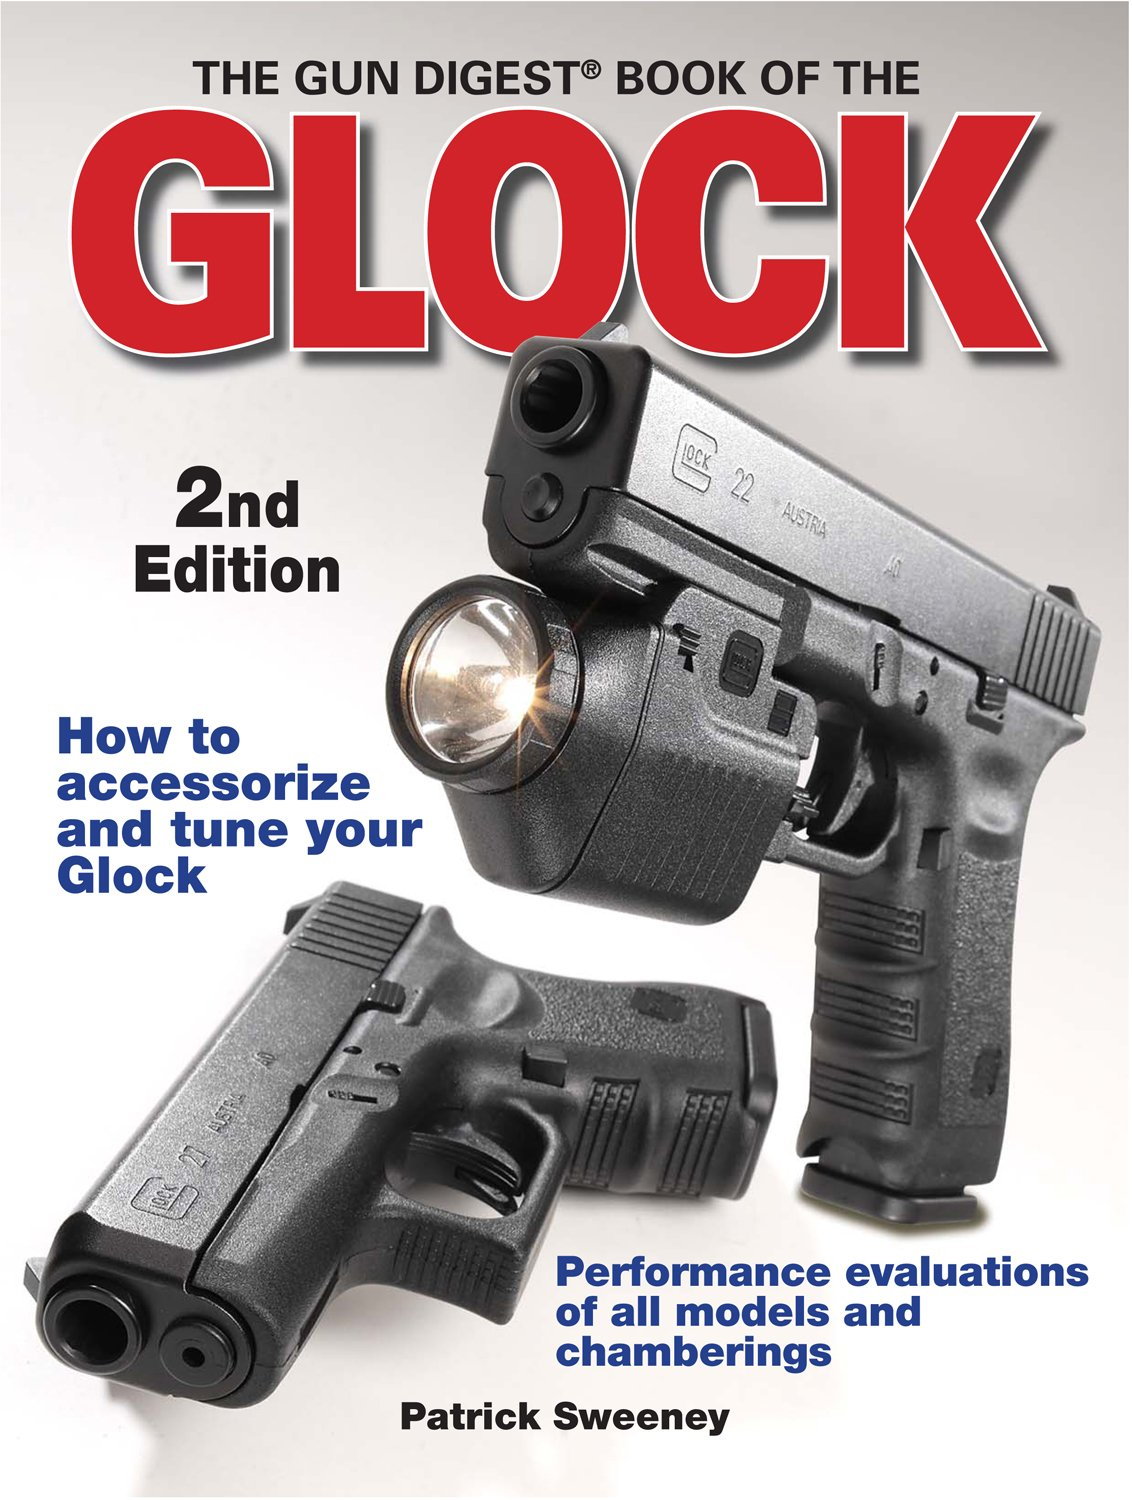 The Gun Digest Book of the Glock, 2nd Edition: Patrick